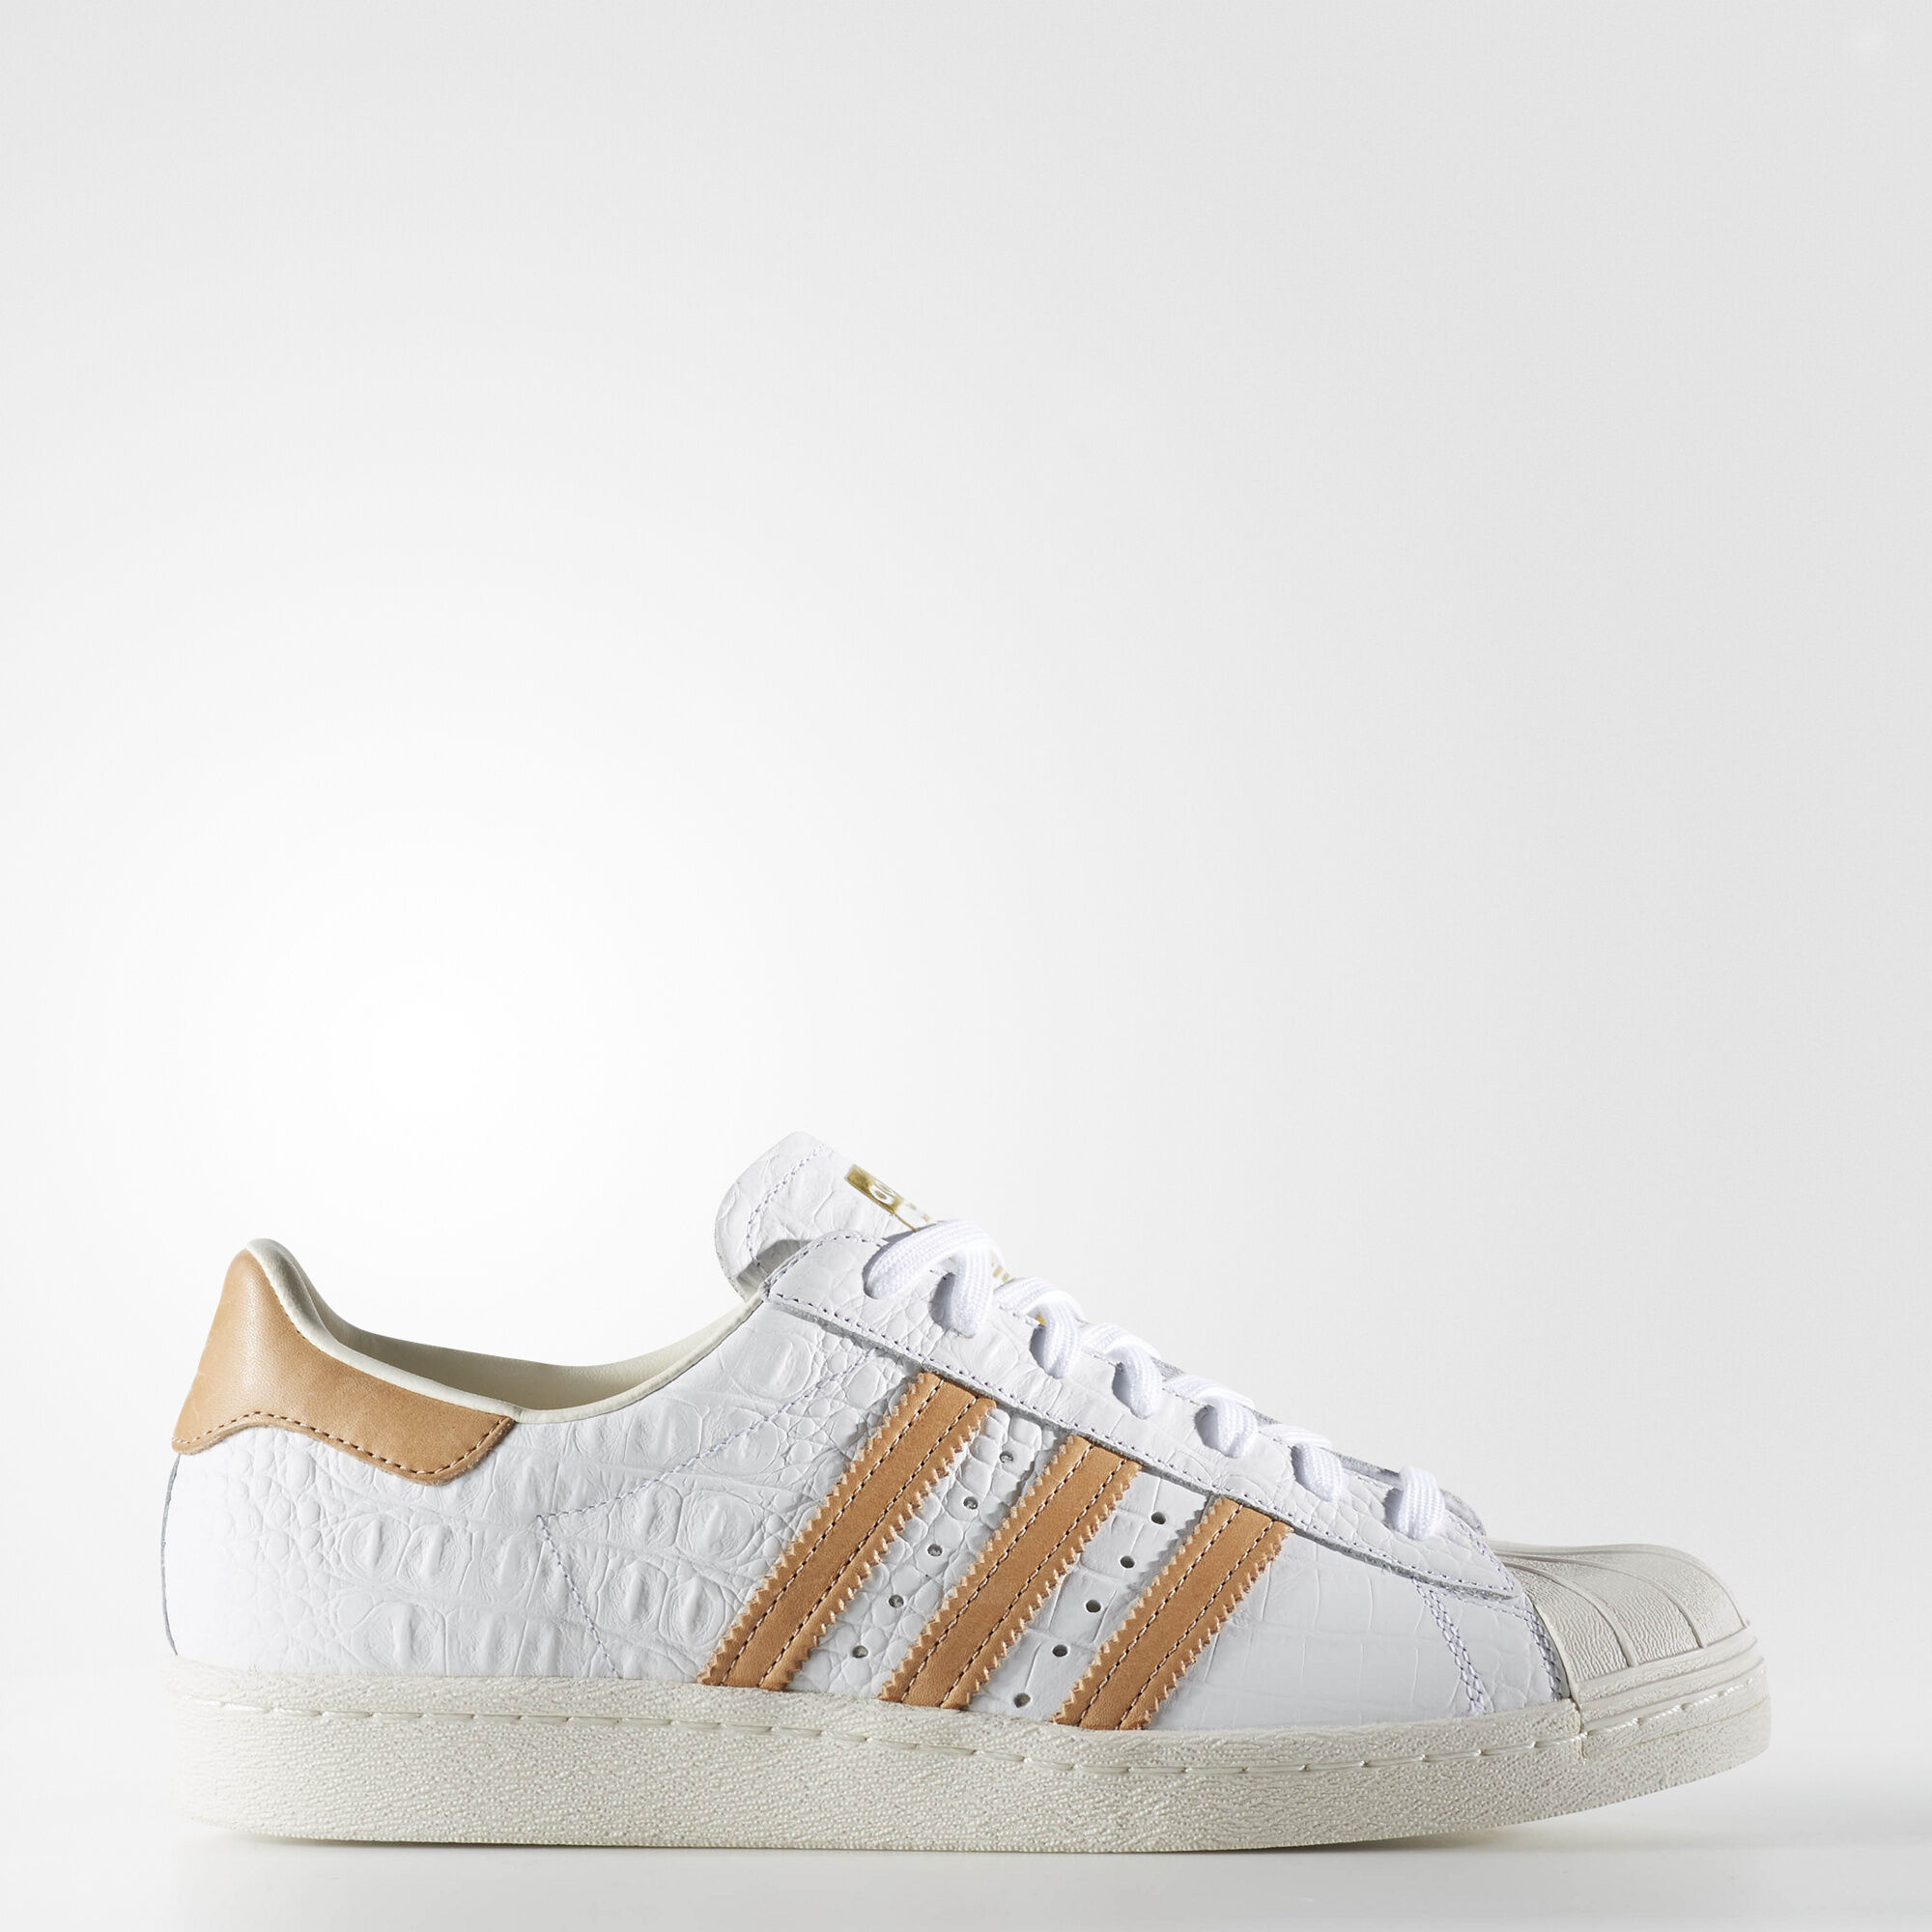 adidas superstar und roten adidas adidas superstar in berlin